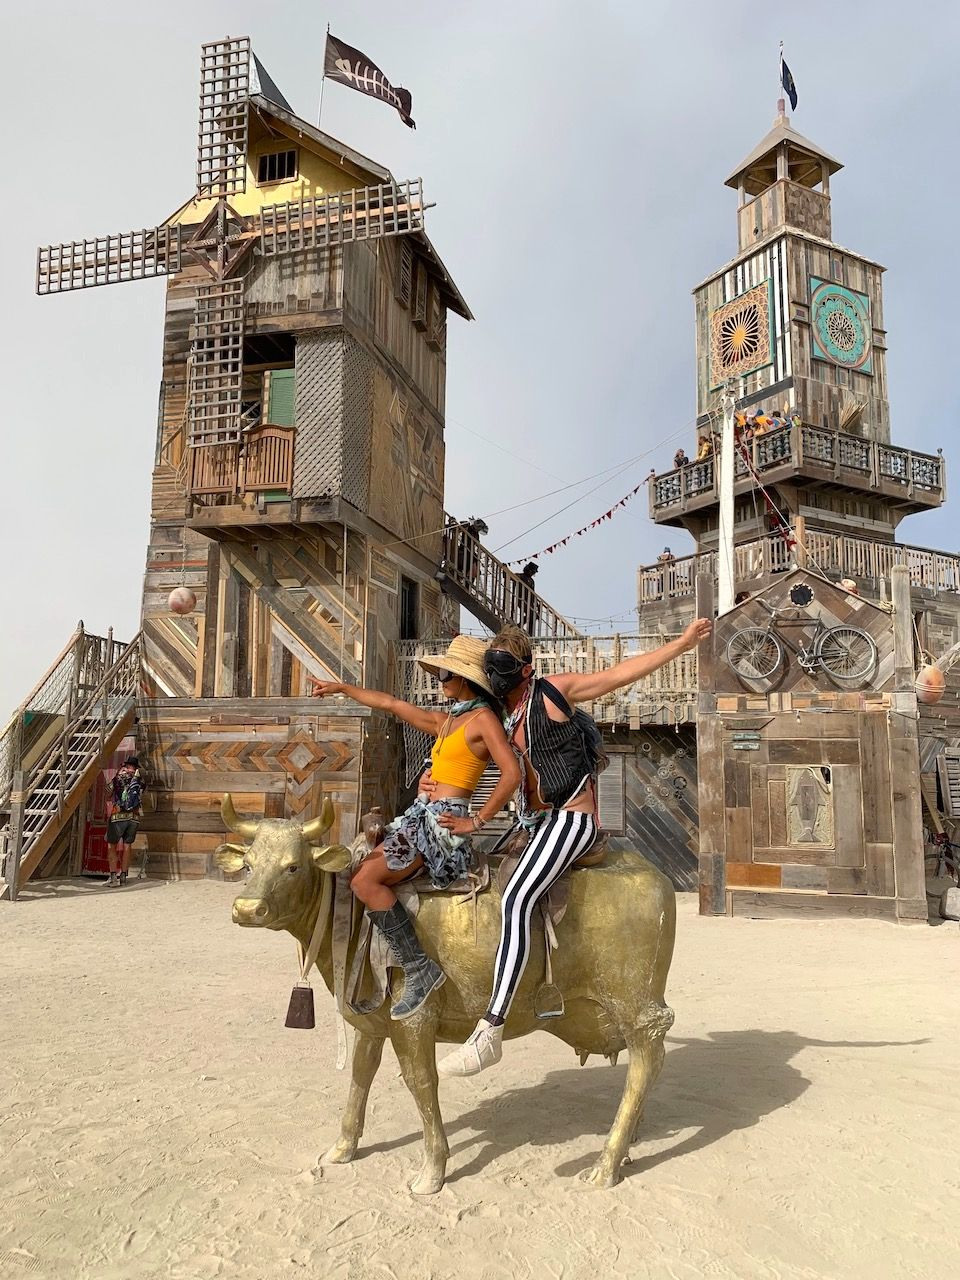 The Folly art installation Burning Man 2019